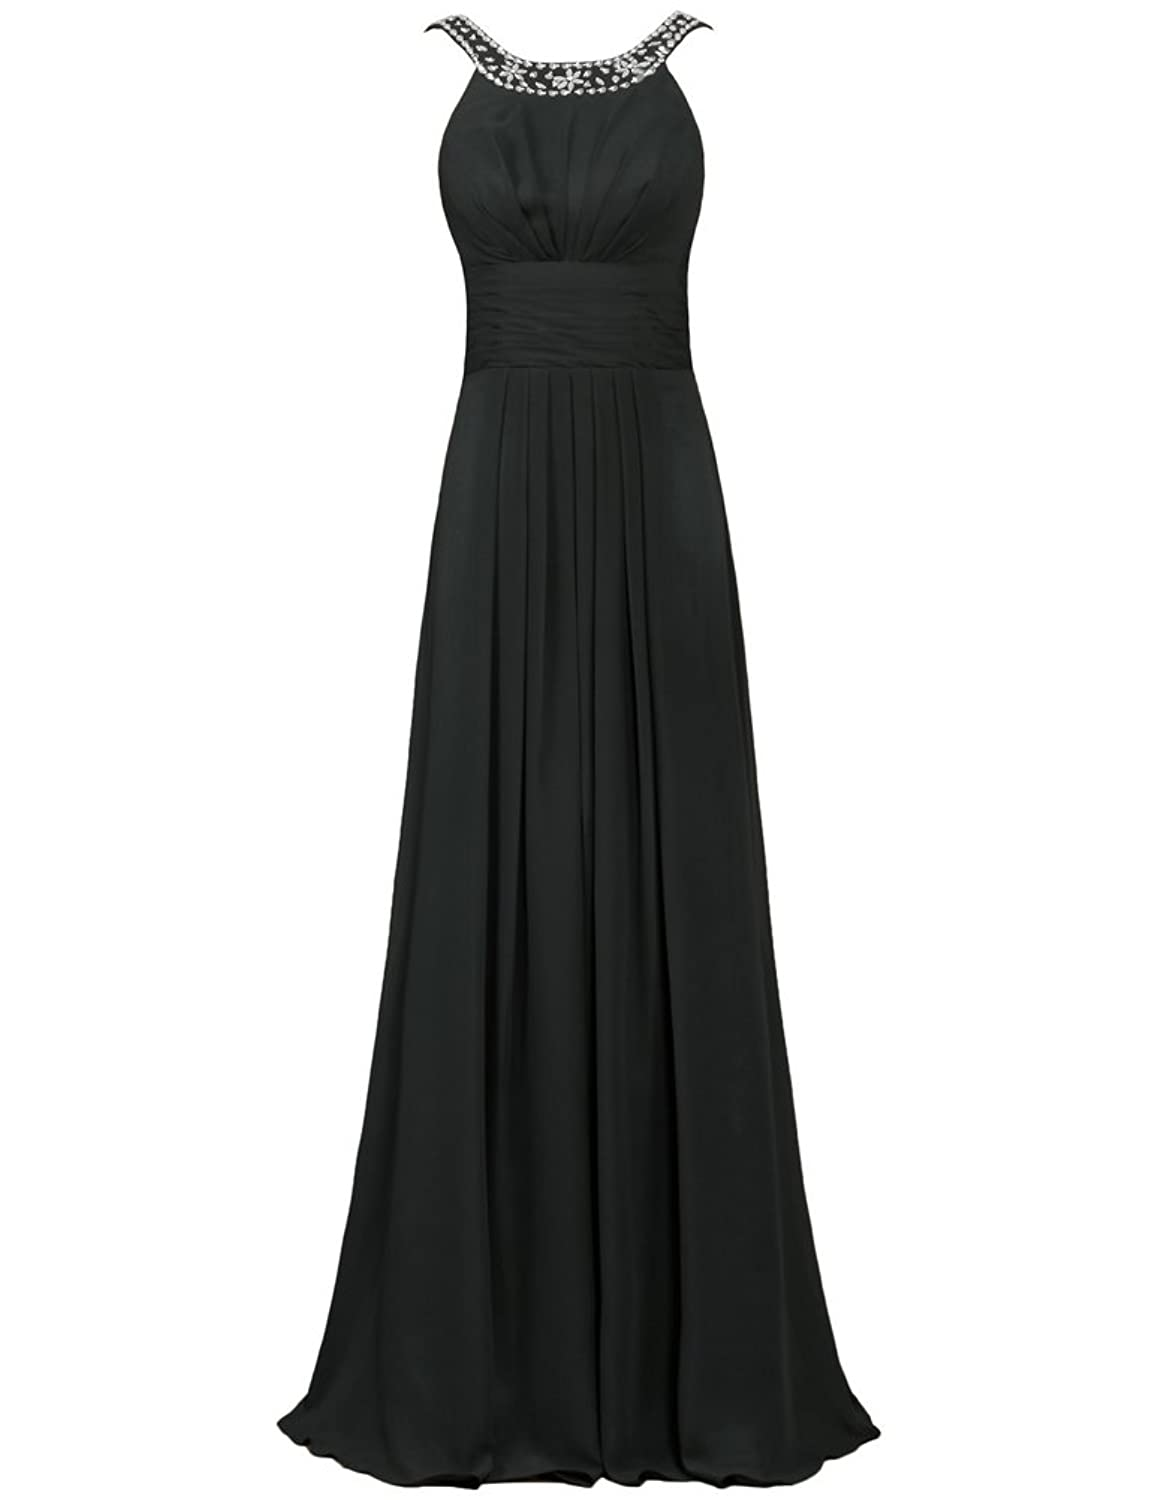 0840f26502c A Line floor length long dress with bead boat neckline. Full Lined with  bone